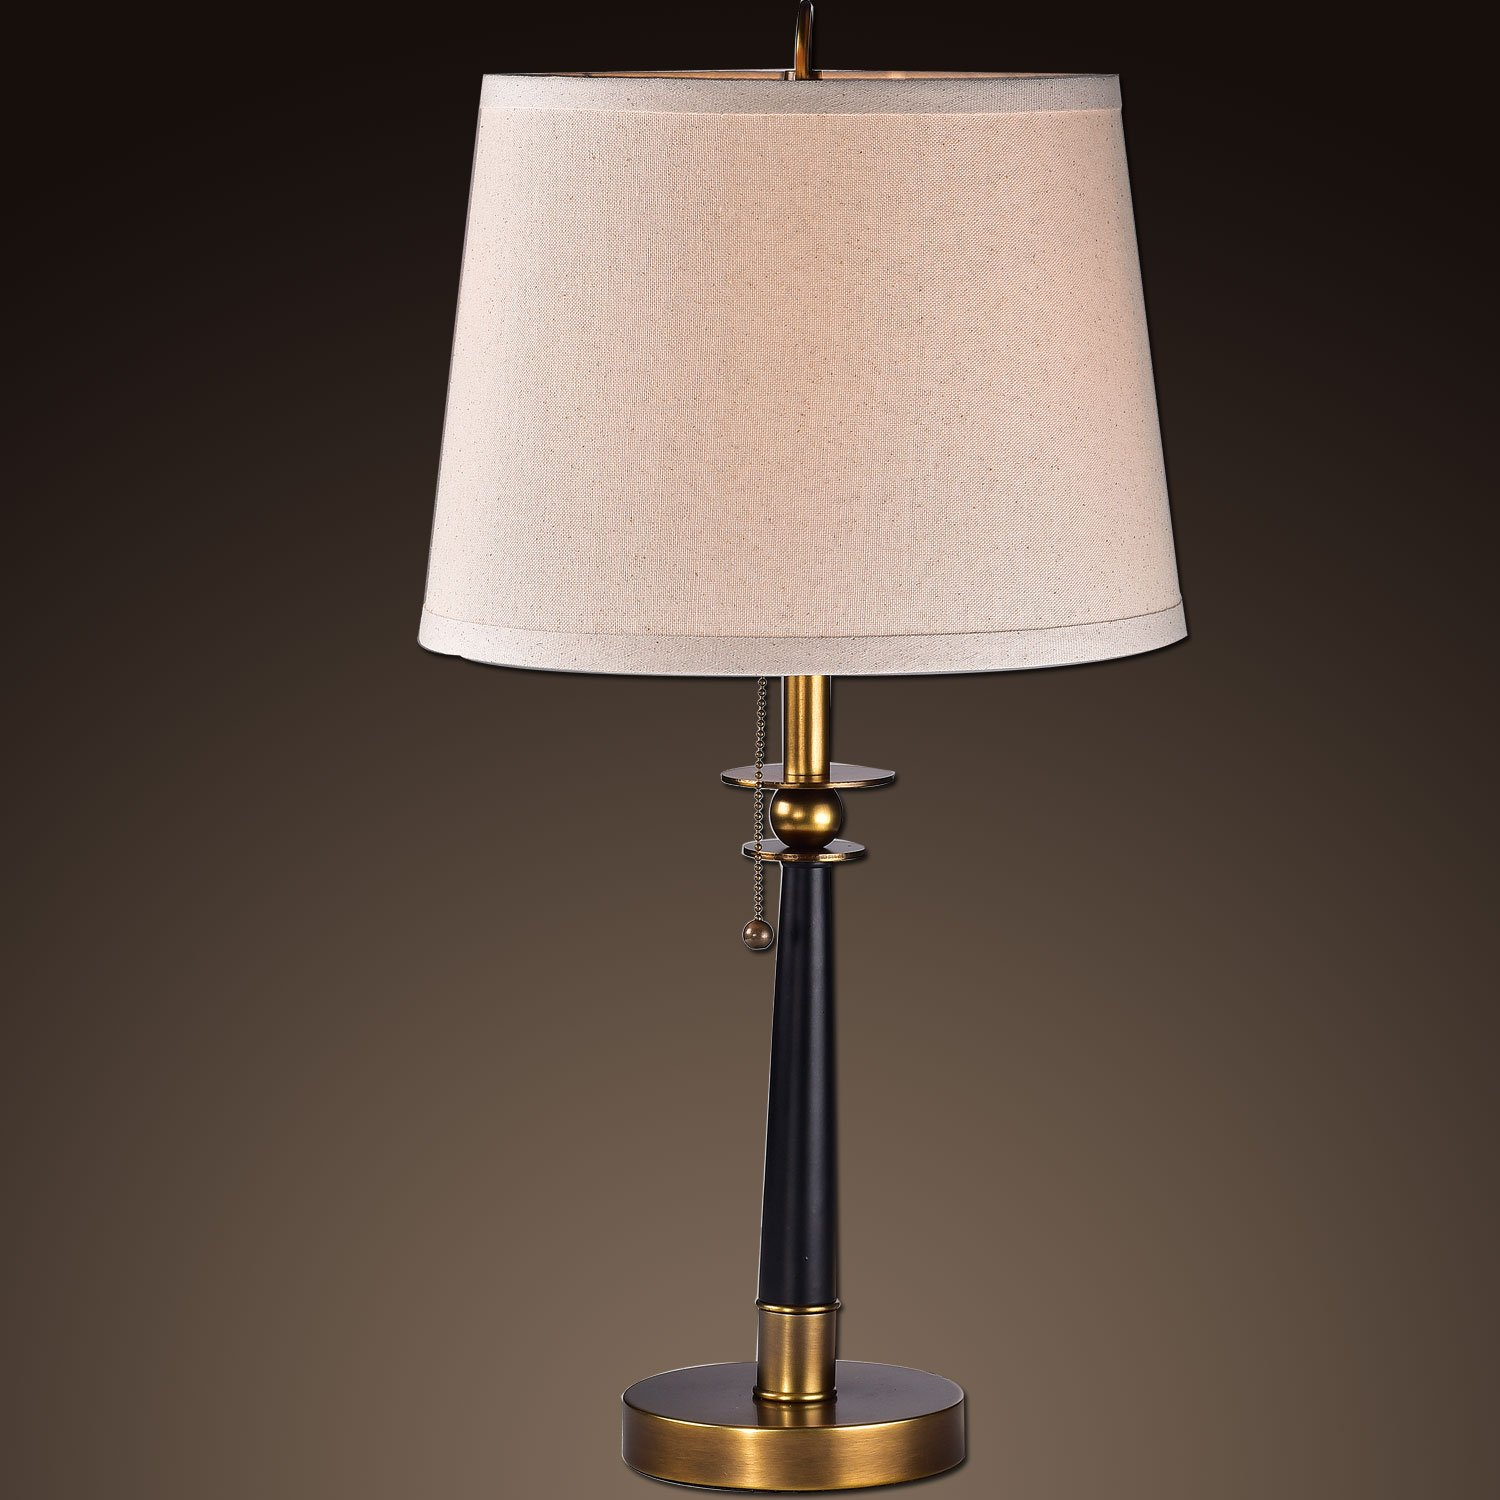 Claxy Lamp, currently unavailable